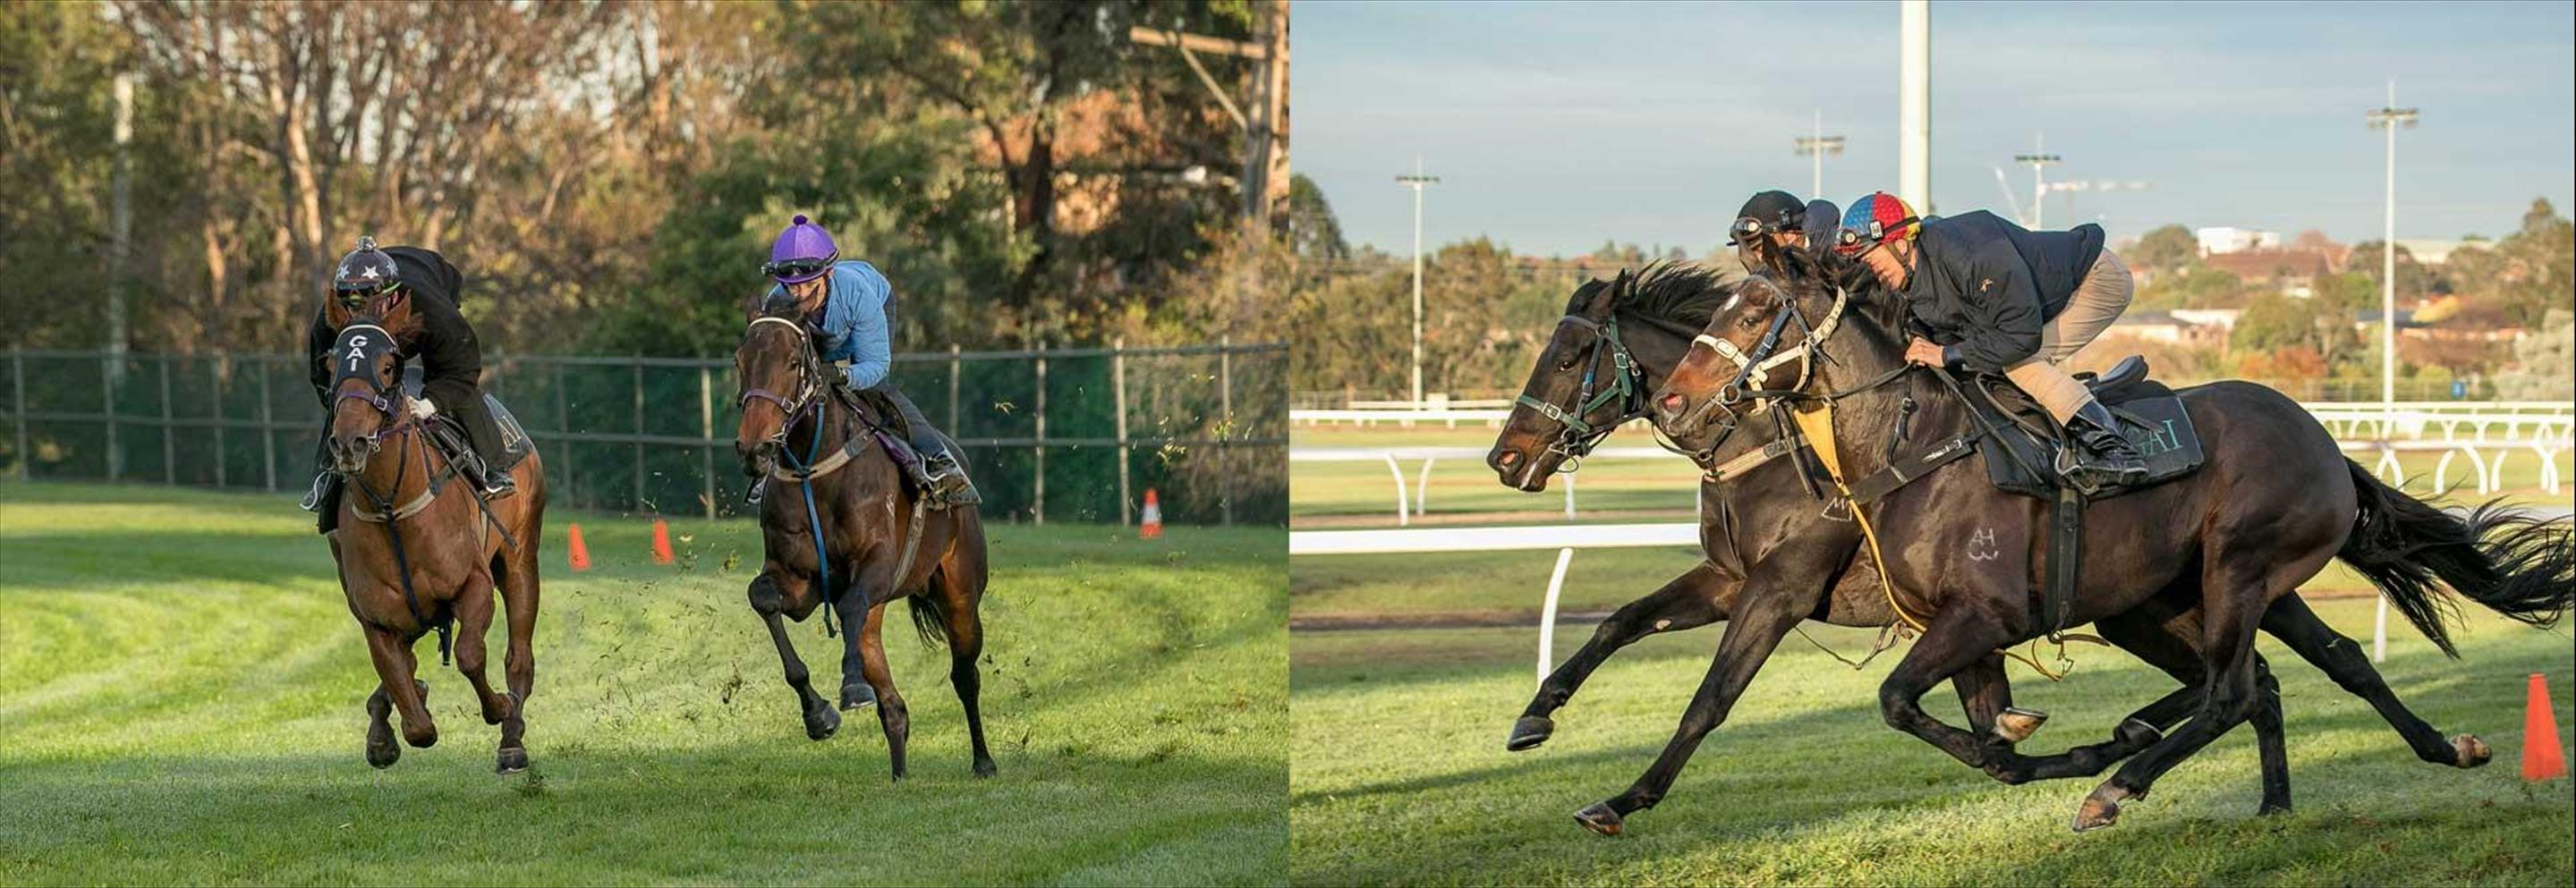 NSW Racehorse Training